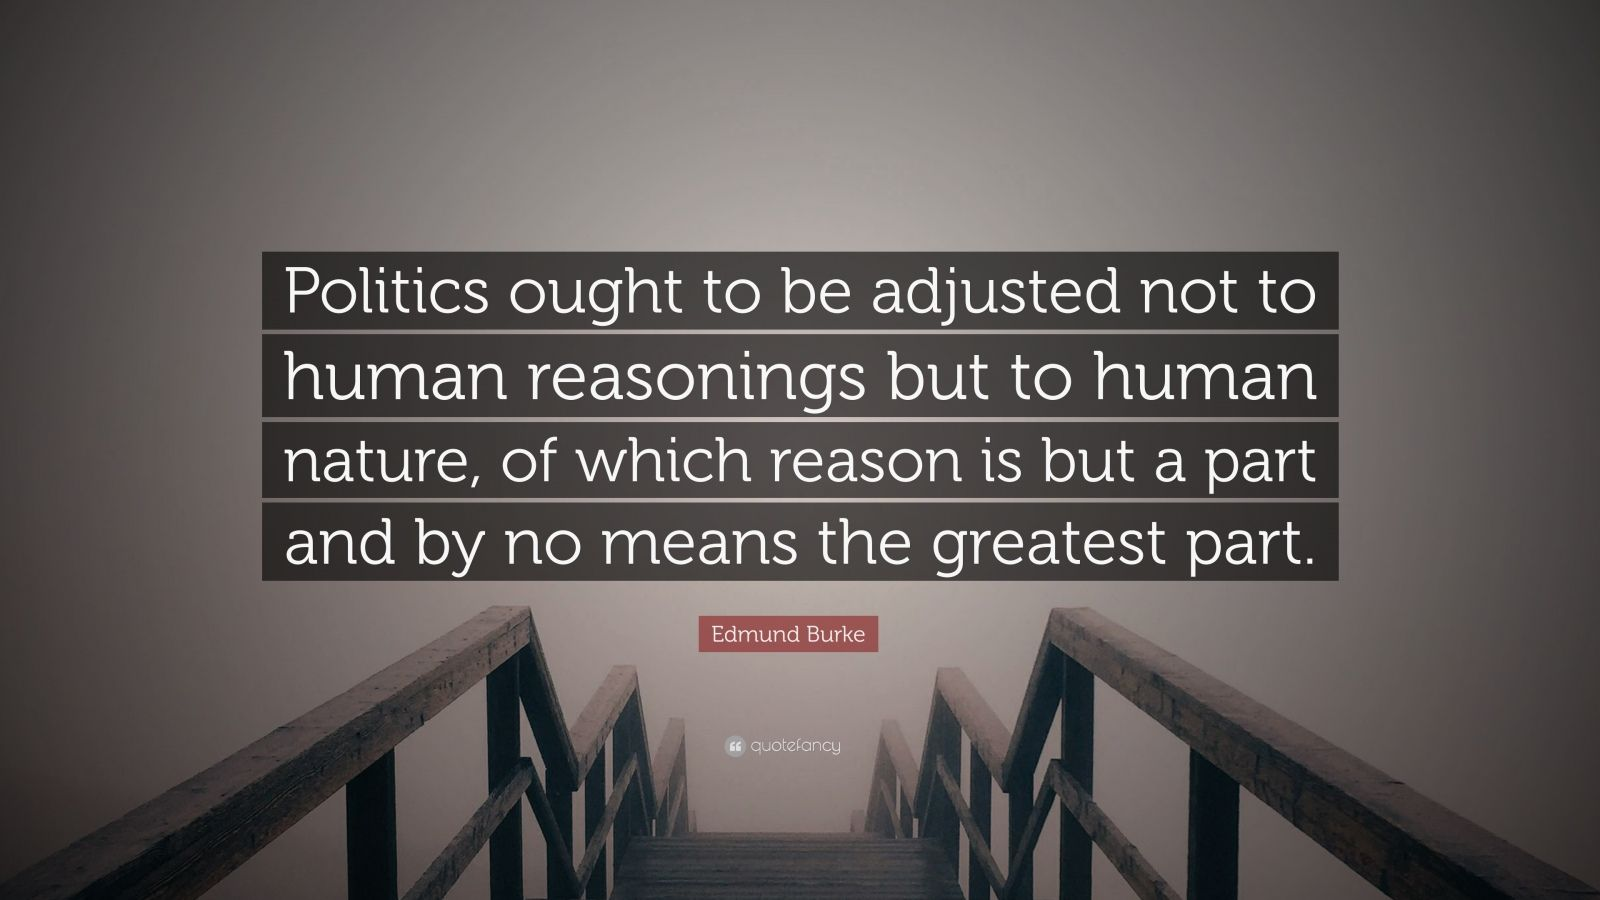 """Edmund Burke Quote: """"Politics ought to be adjusted not to human reasonings but to human nature, of which reason is but a part and by no means the greatest part."""""""